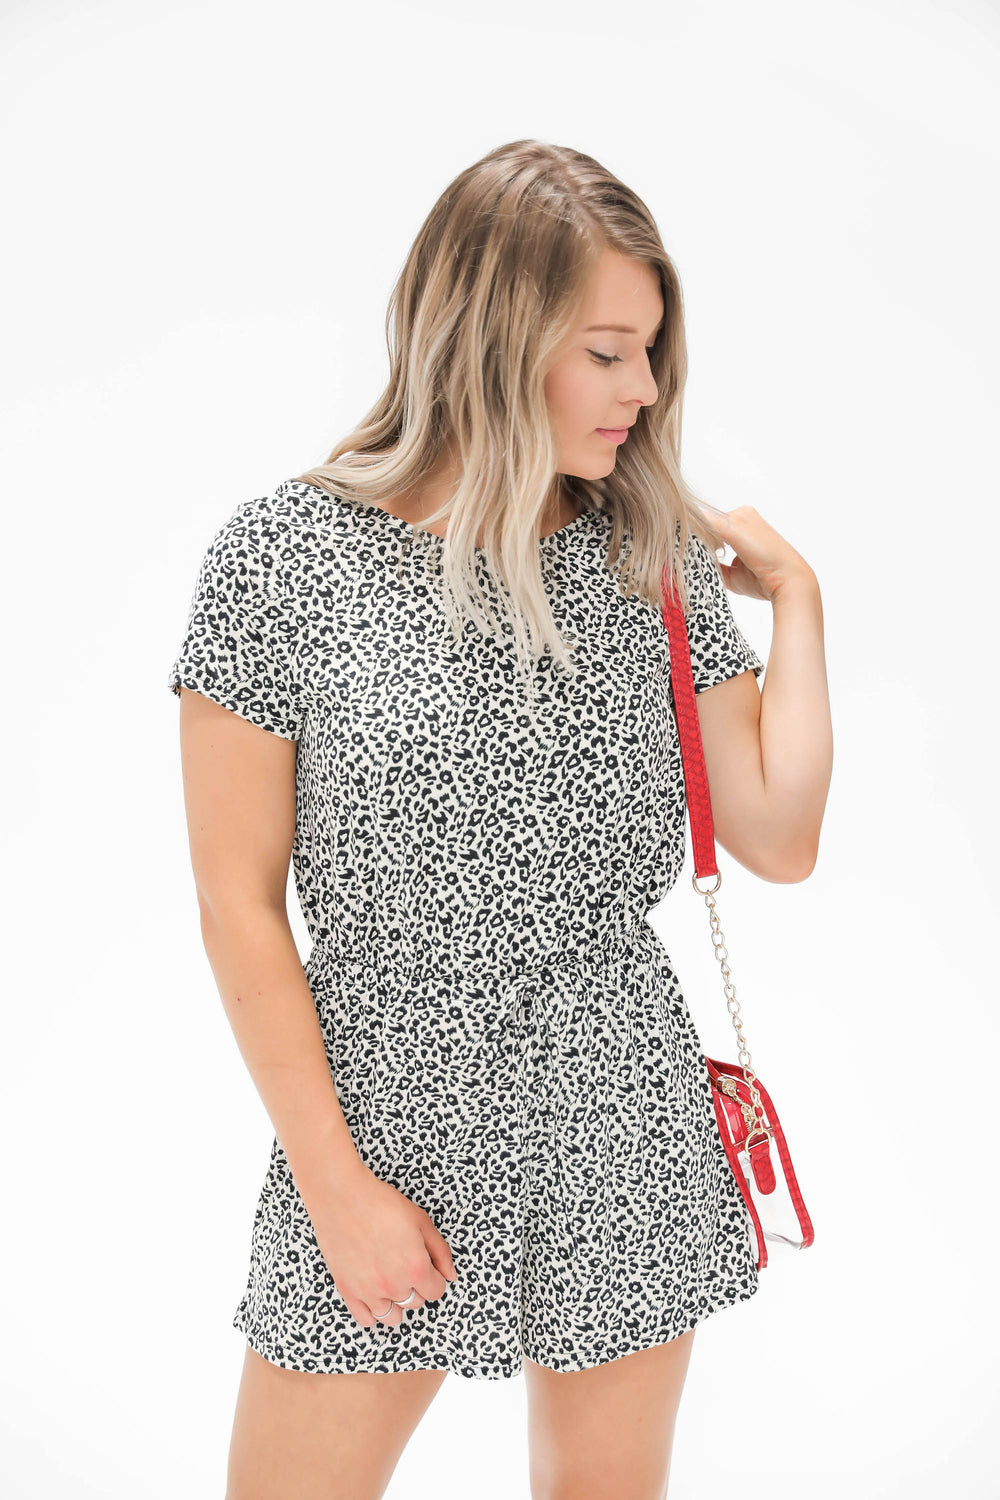 Catching Your Eye  Open Back Leopard Romper